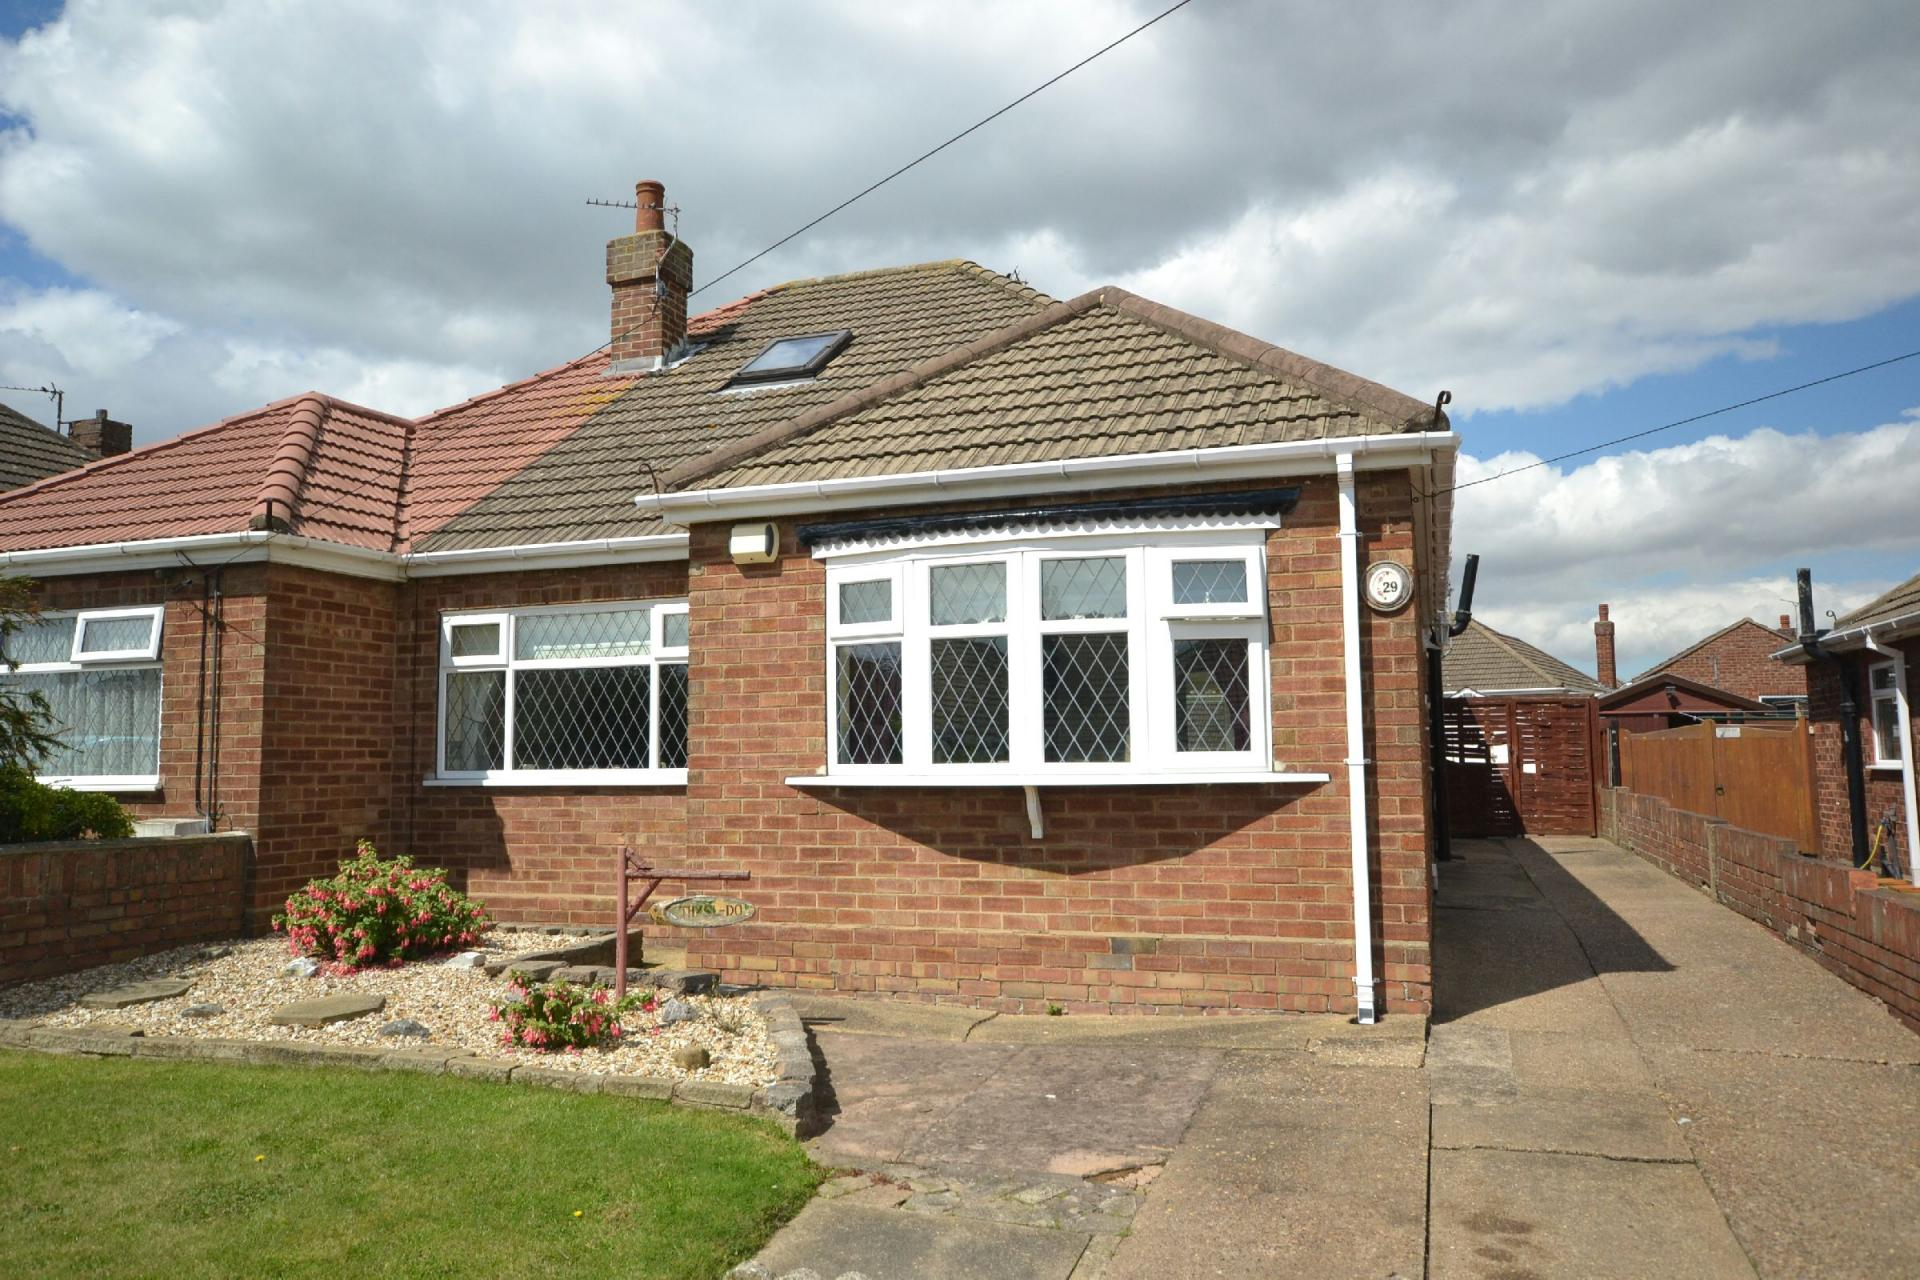 2 bedroom semi detached bungalow for sale in cleethorpes for Semi detached garage plans